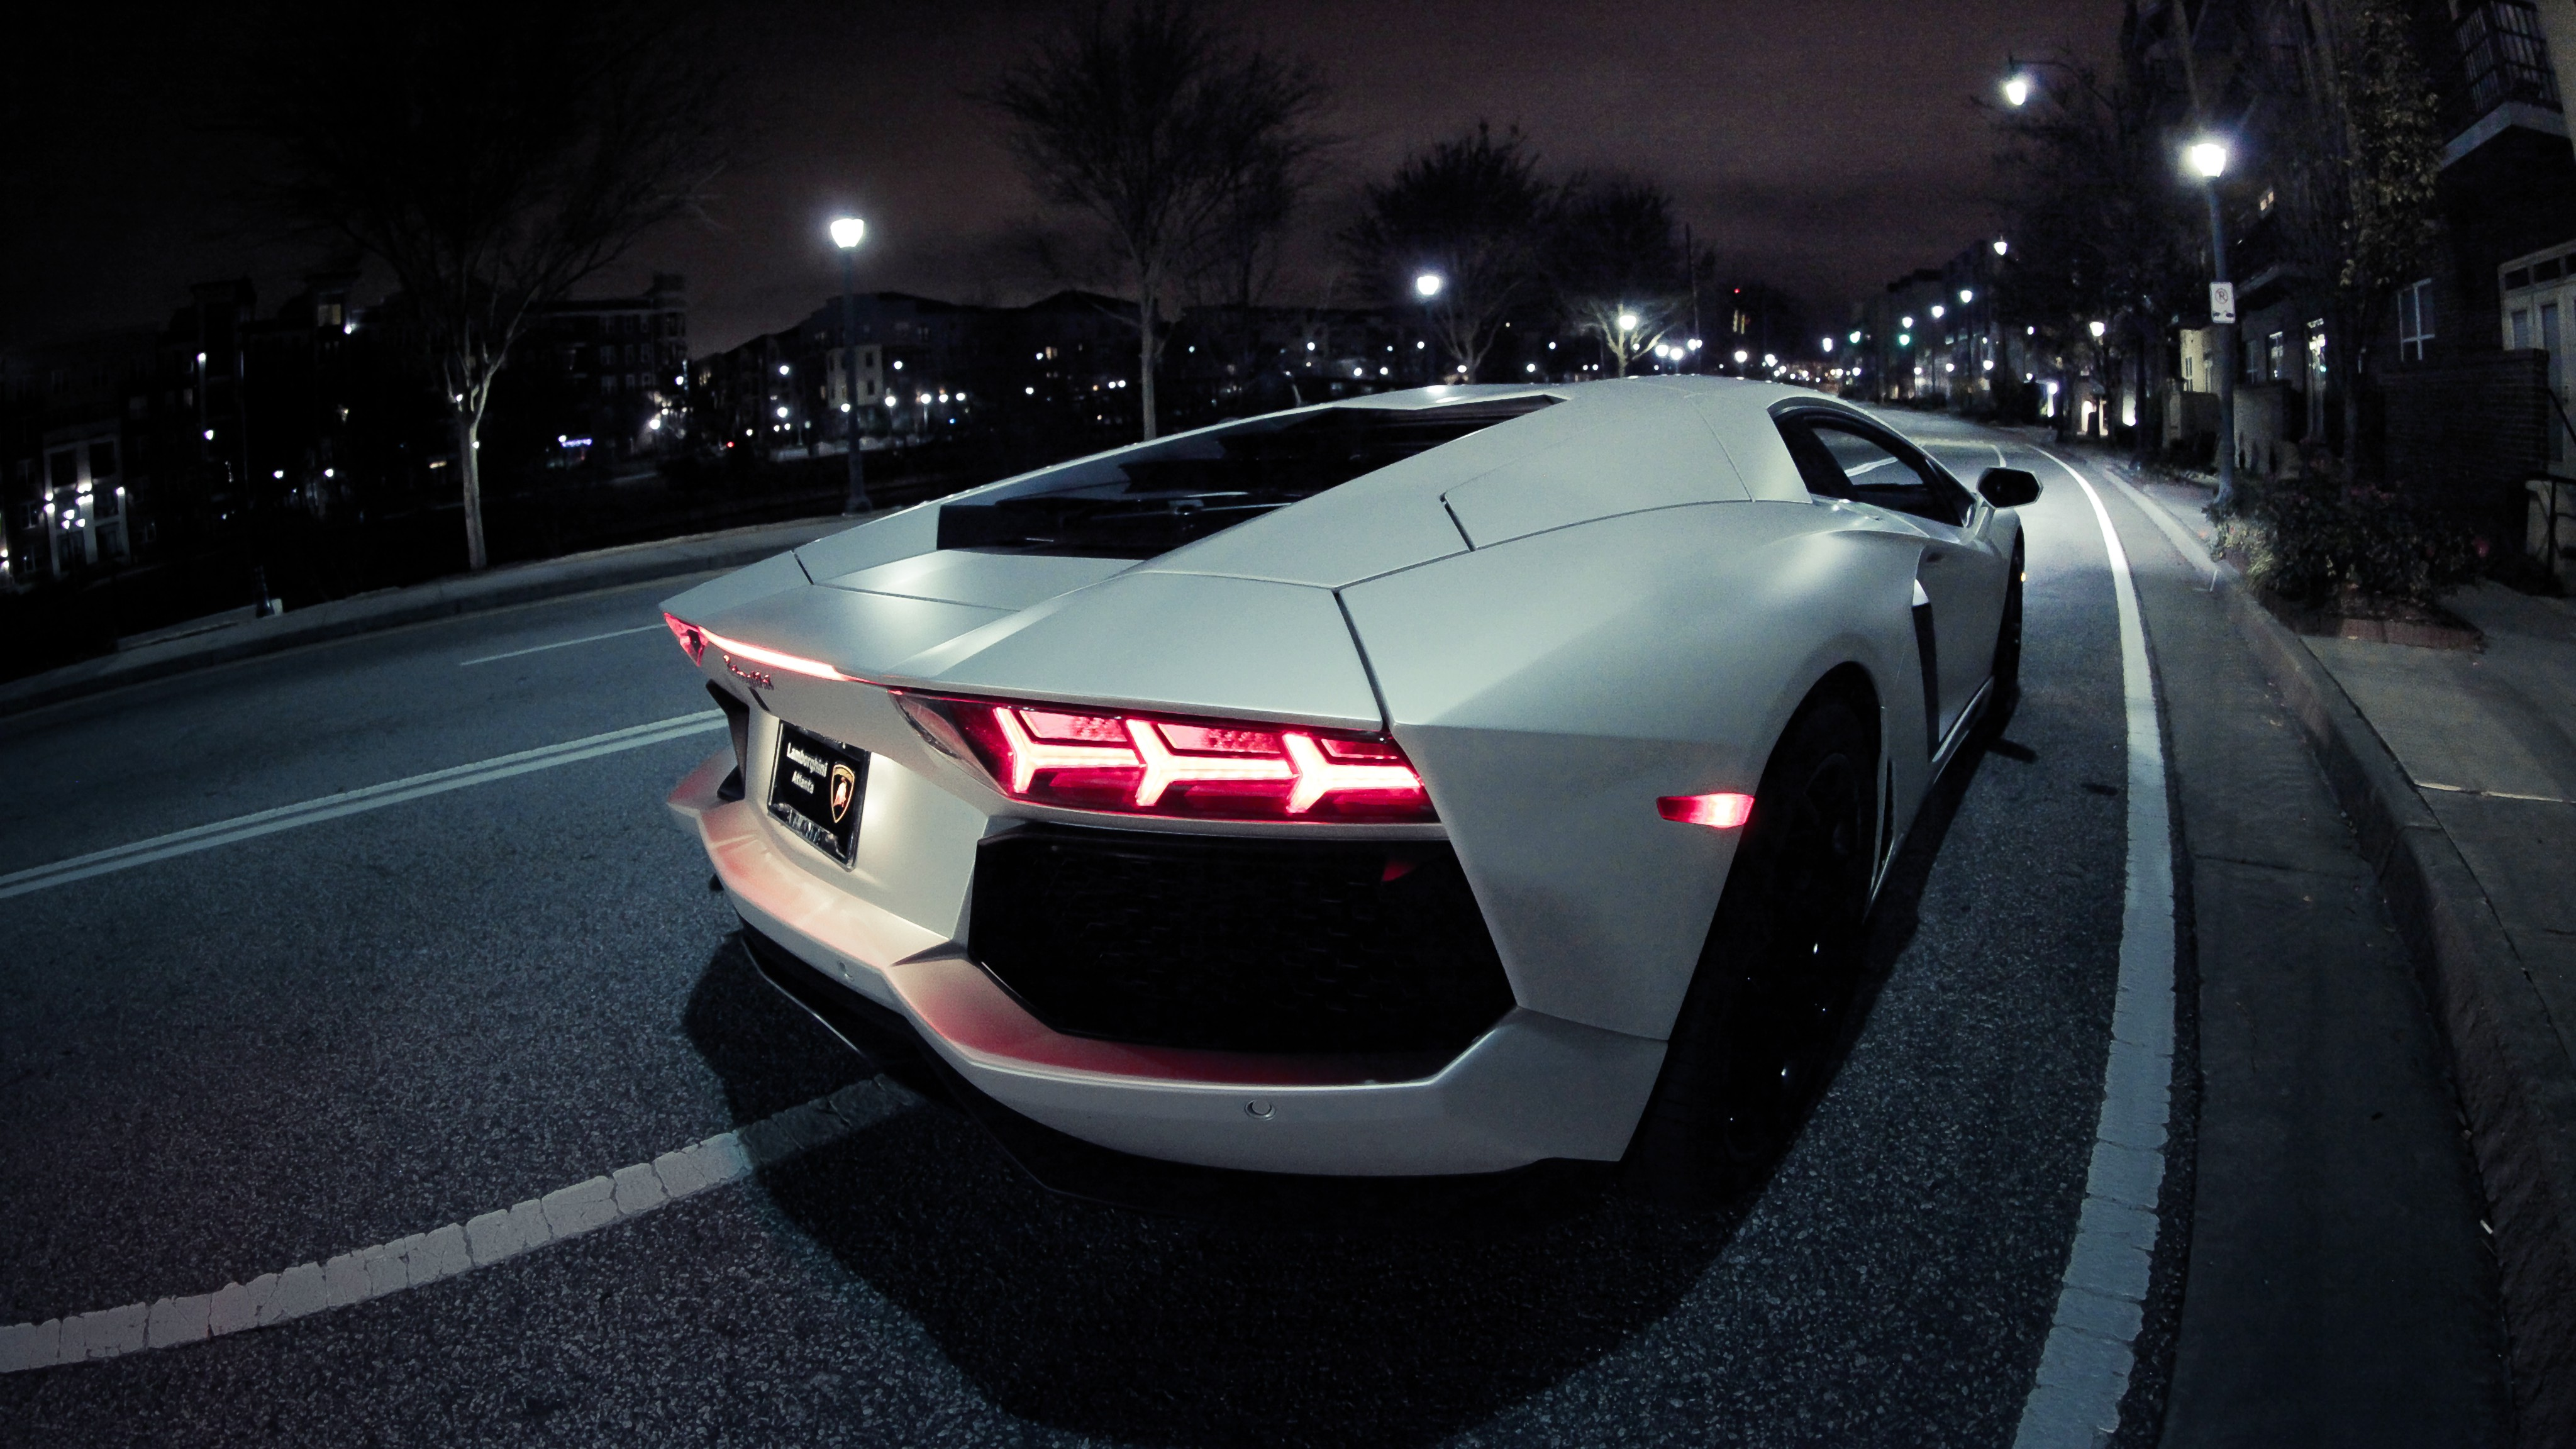 Lamborghini White Wallpapers HD 4096x2304